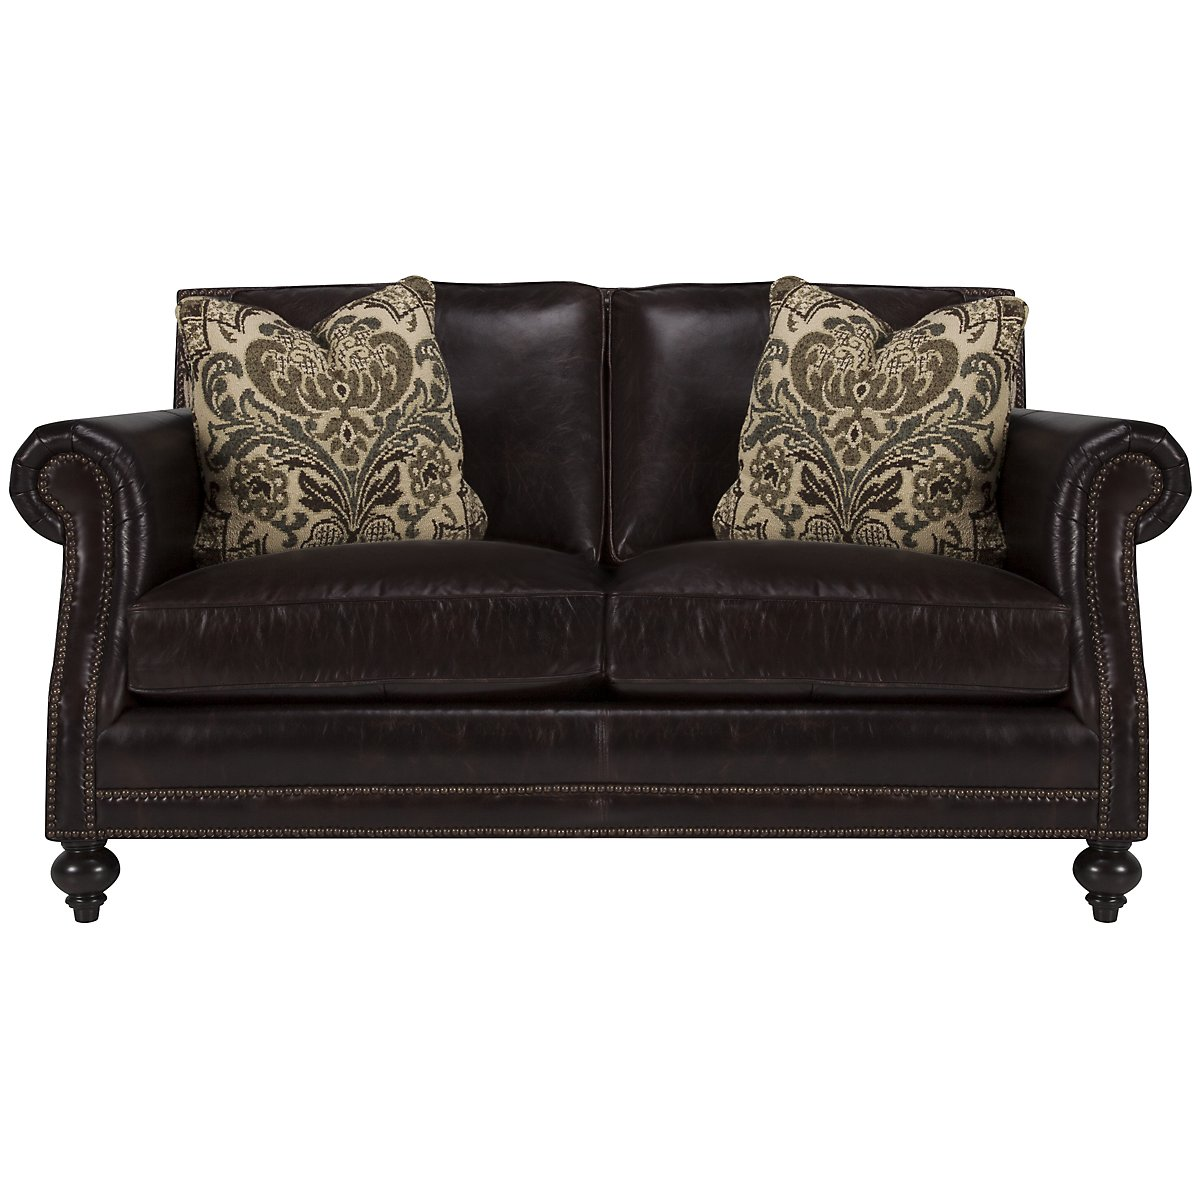 Brae Dk Brown Leather Loveseat